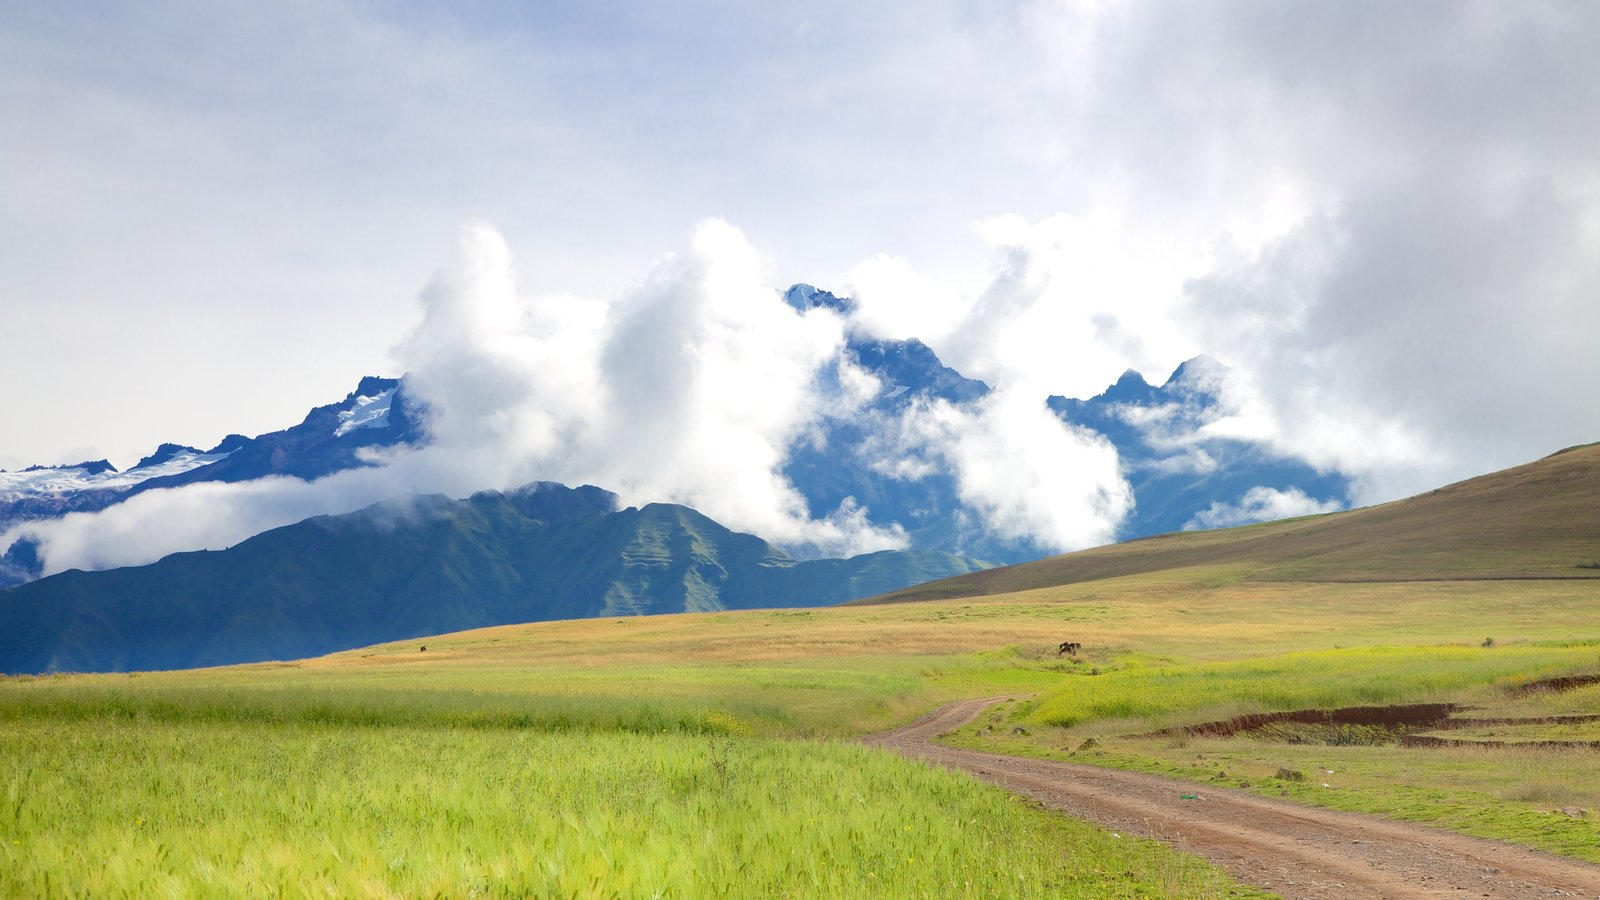 Cusco - Machu Picchu featuring tranquil scenes, mountains and landscape views